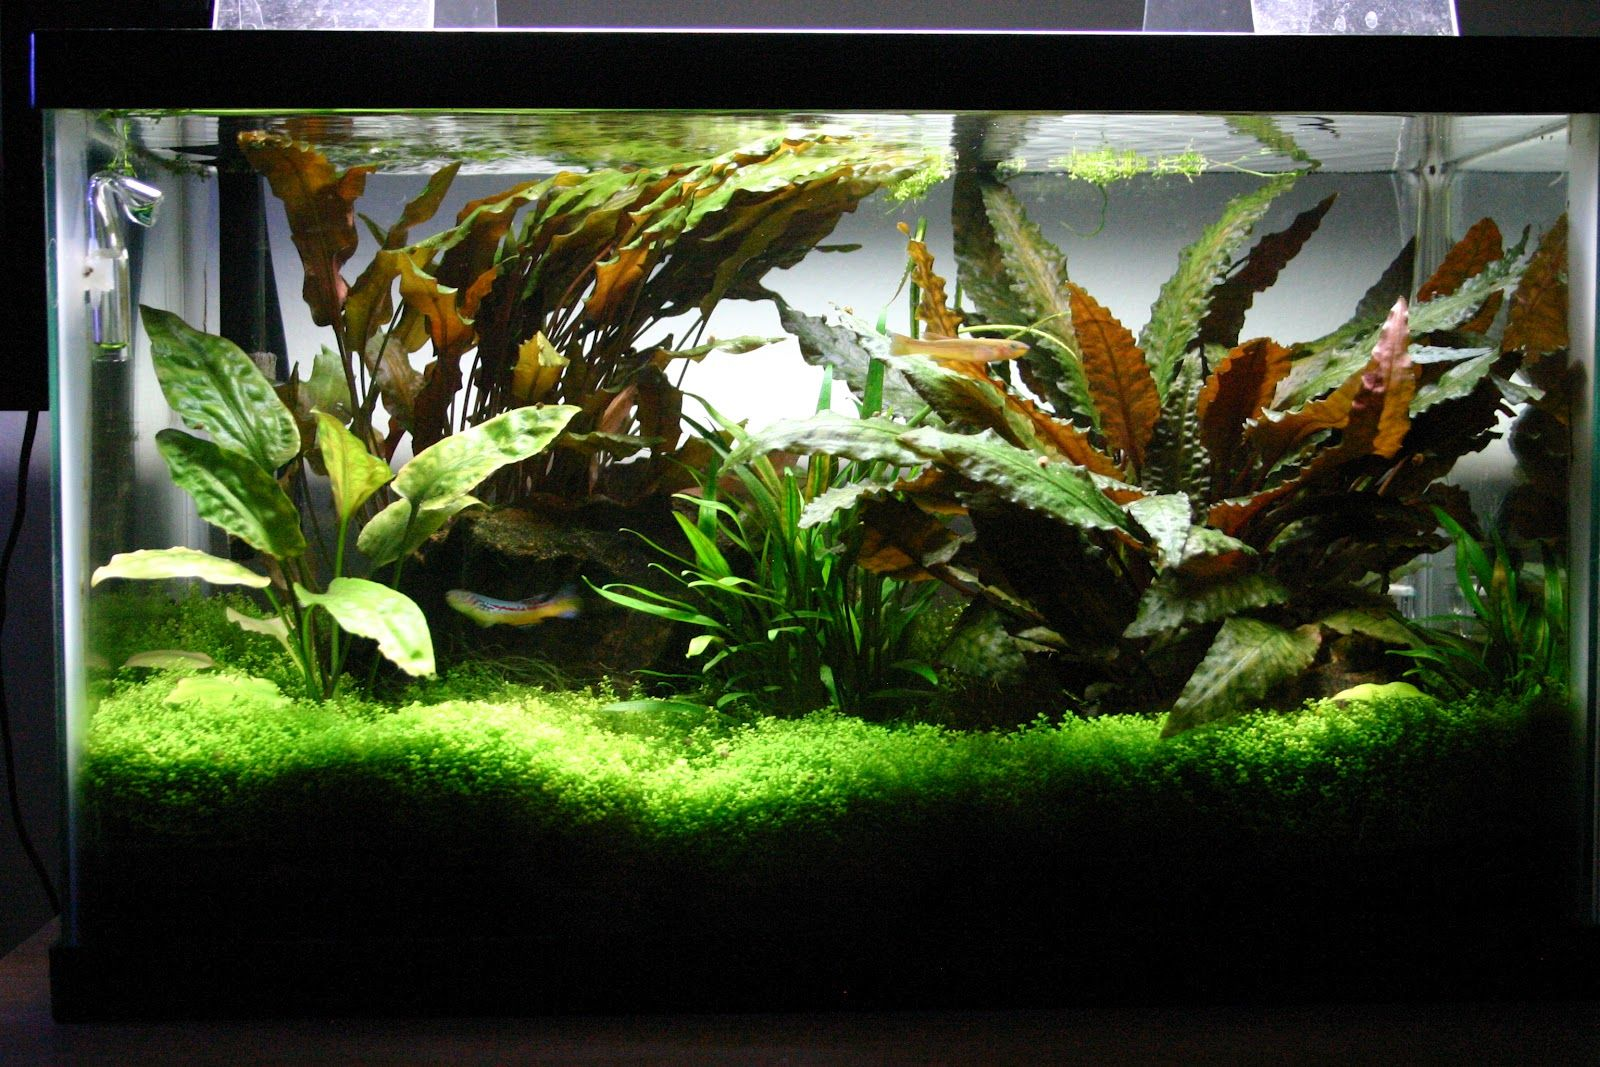 10 Gallon Planted Tank Fish Aquarium Decorations 10 Gallon Fish Tank Fish Tank Plants